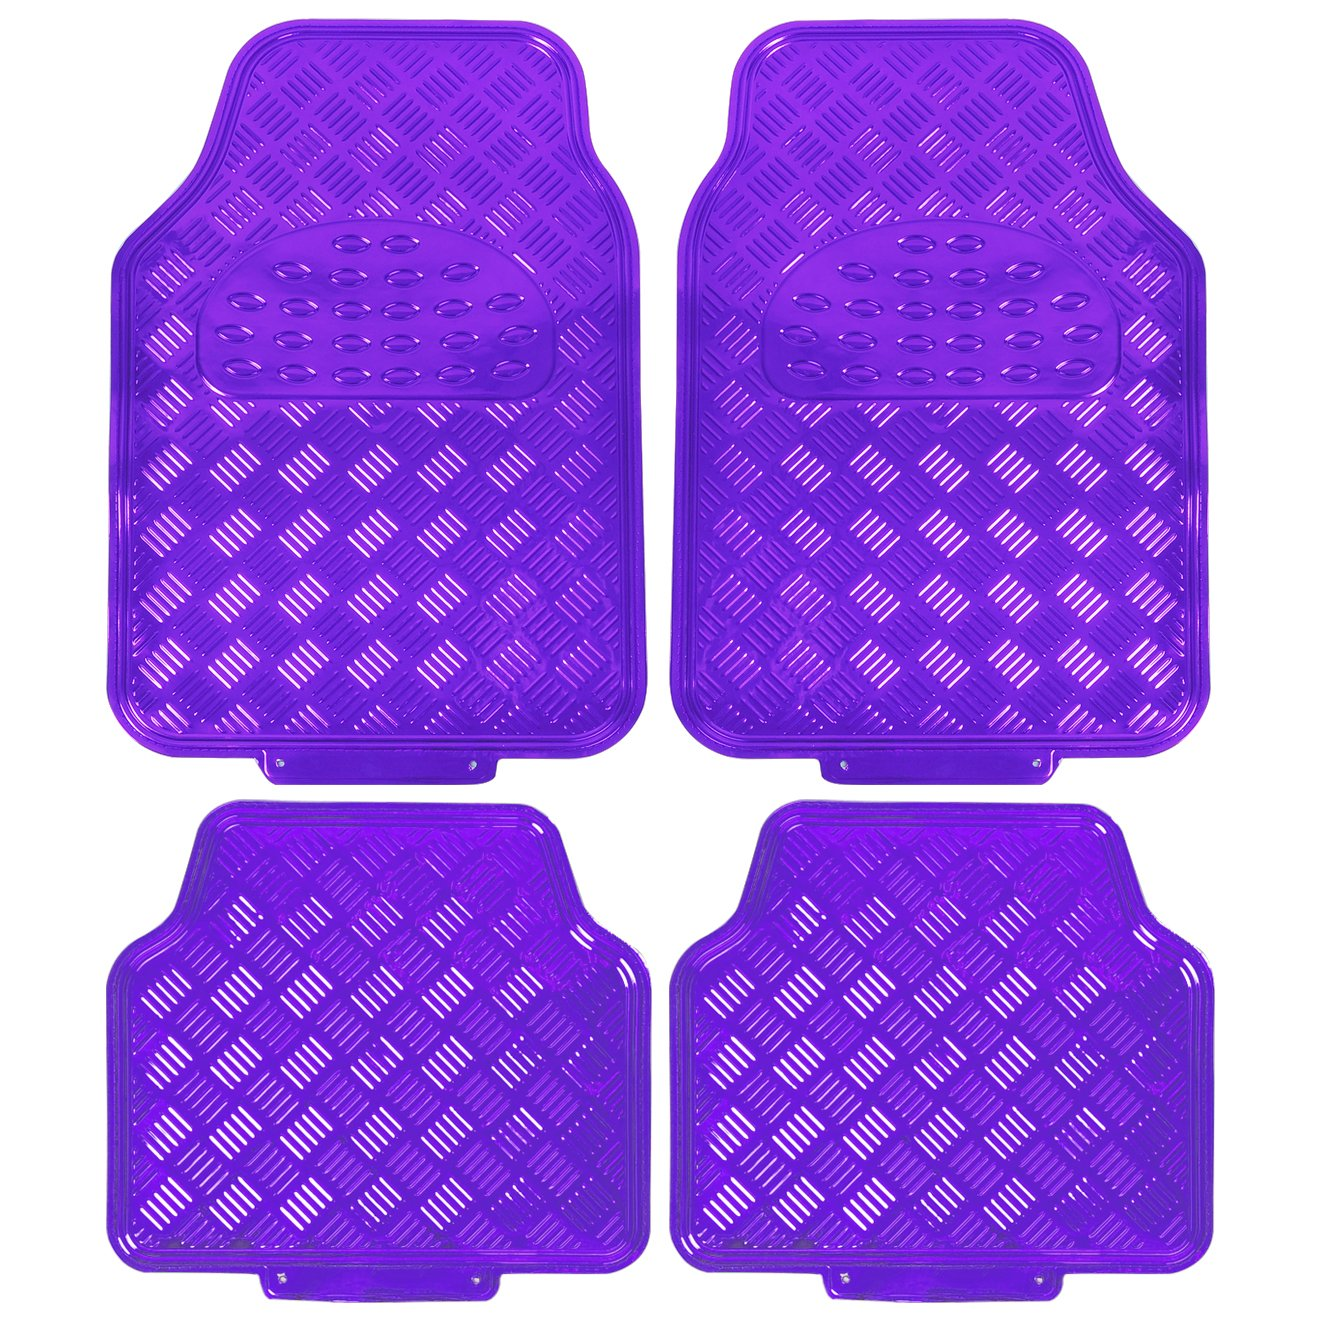 WOLTU AM7162 Universal Non-Slip PVC Car Floor Mat Set of 4 Piece Front /& Rear Glossy Purple